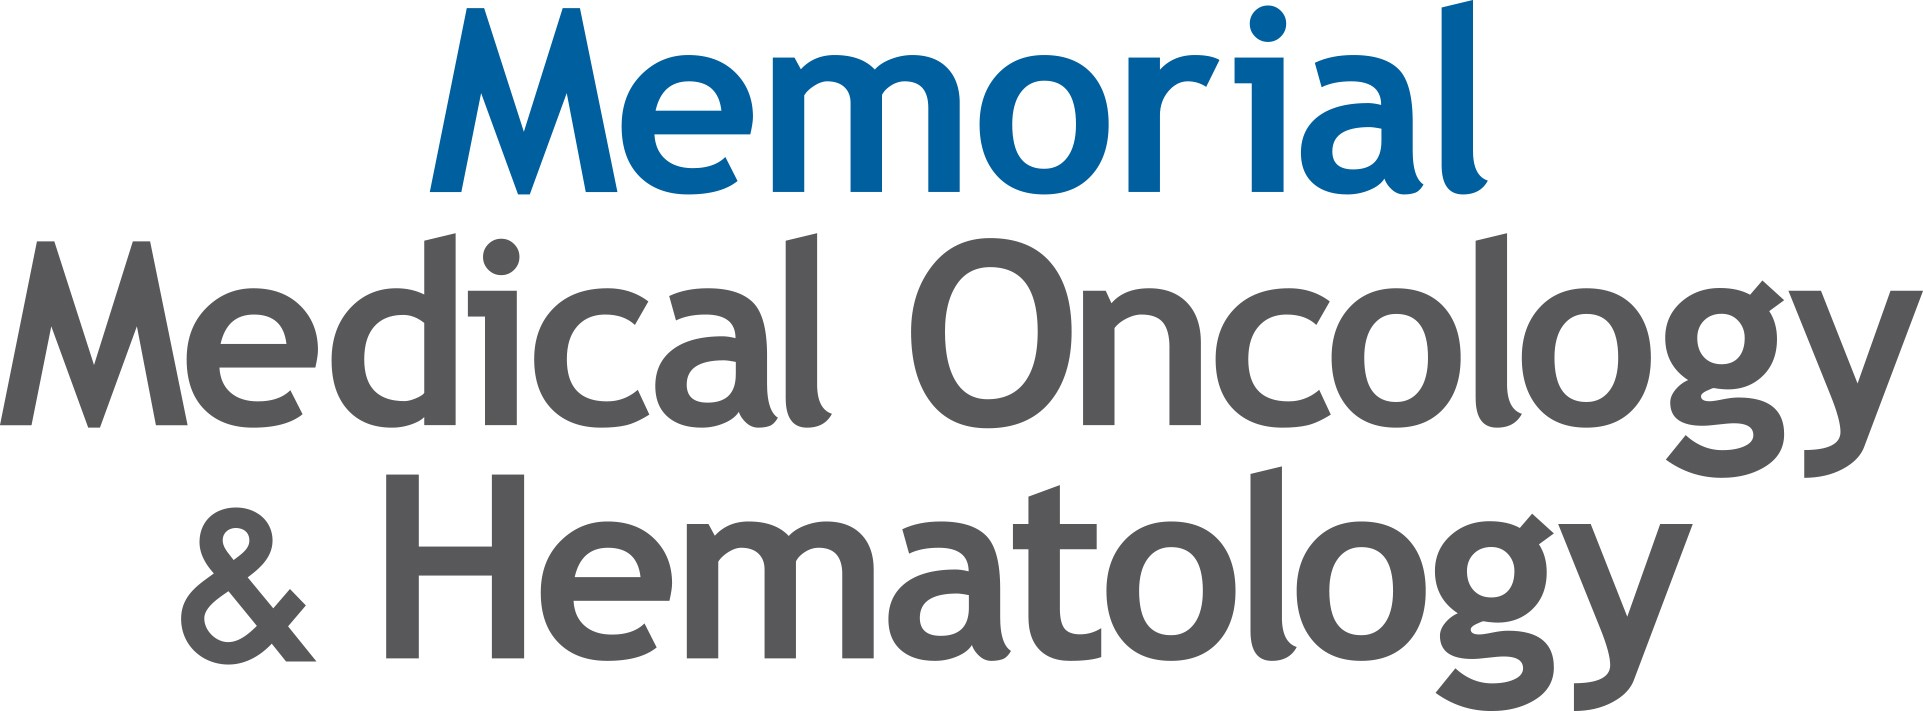 Memorial Cancer Center image 1